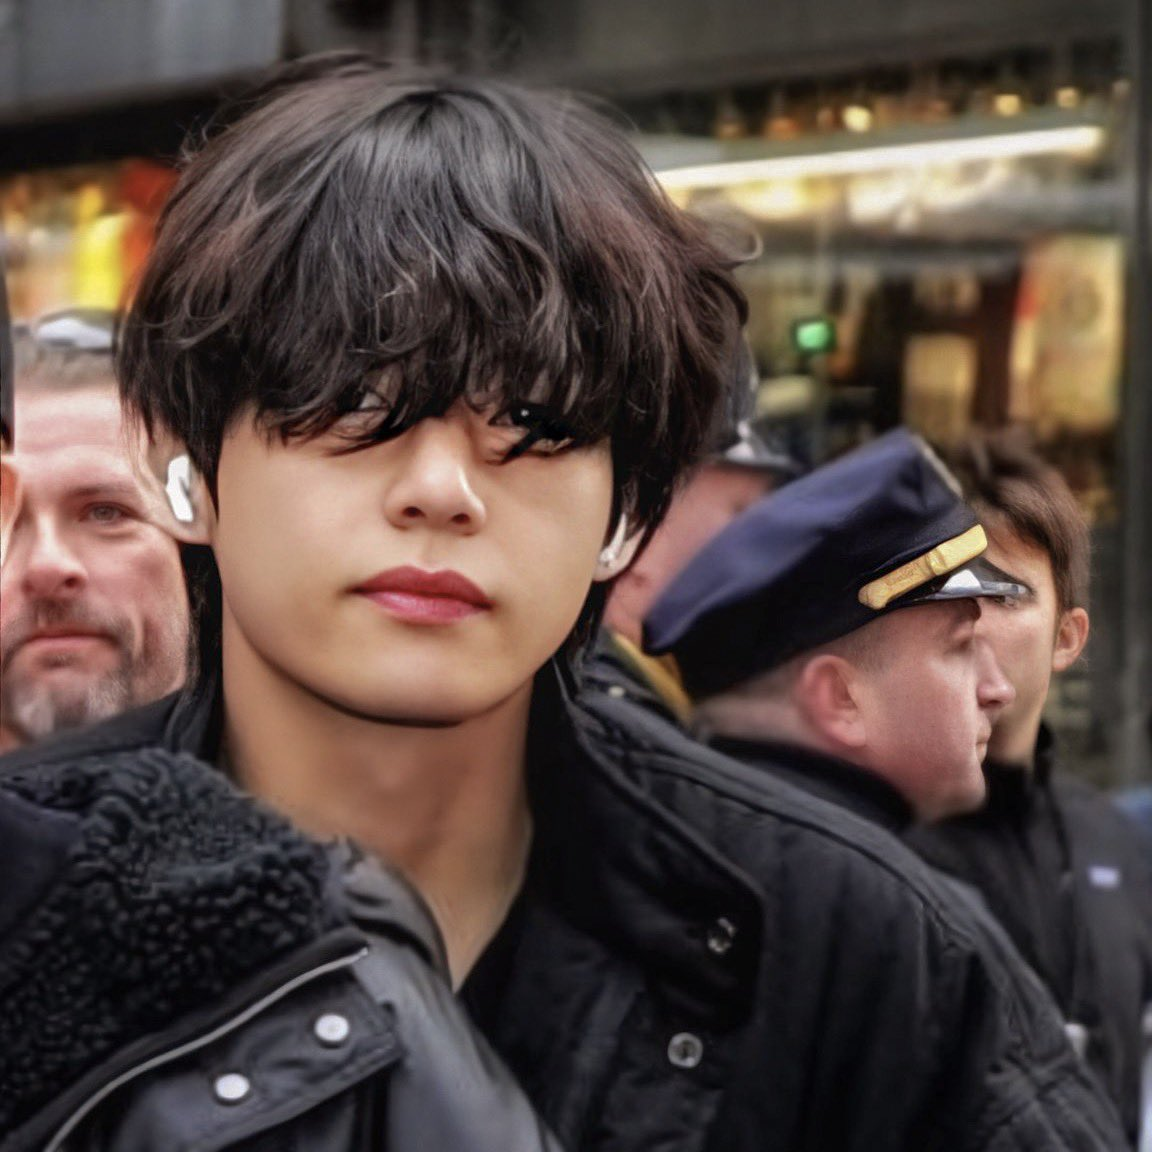 taehyung was truly insane for this